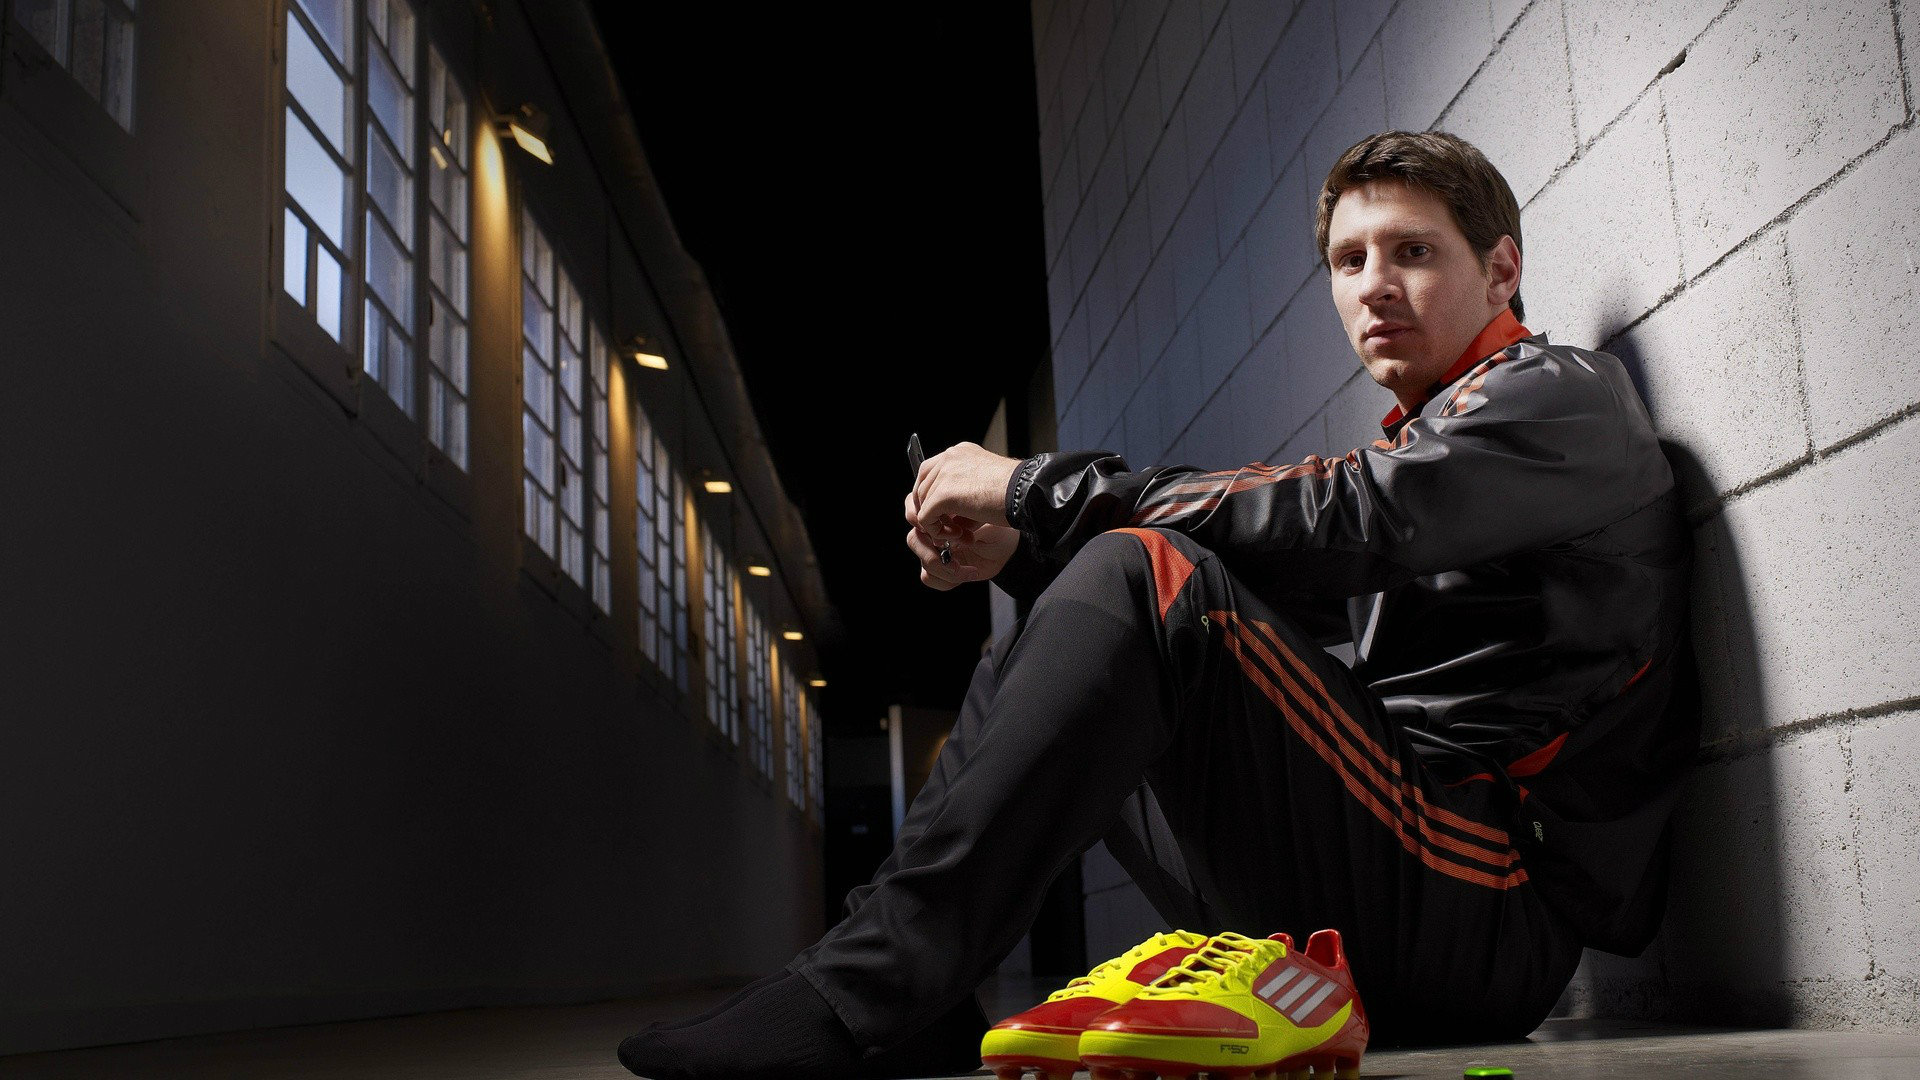 Lionel Messi Latest HD Wallpaper 2016 | HD Wallpapers ...